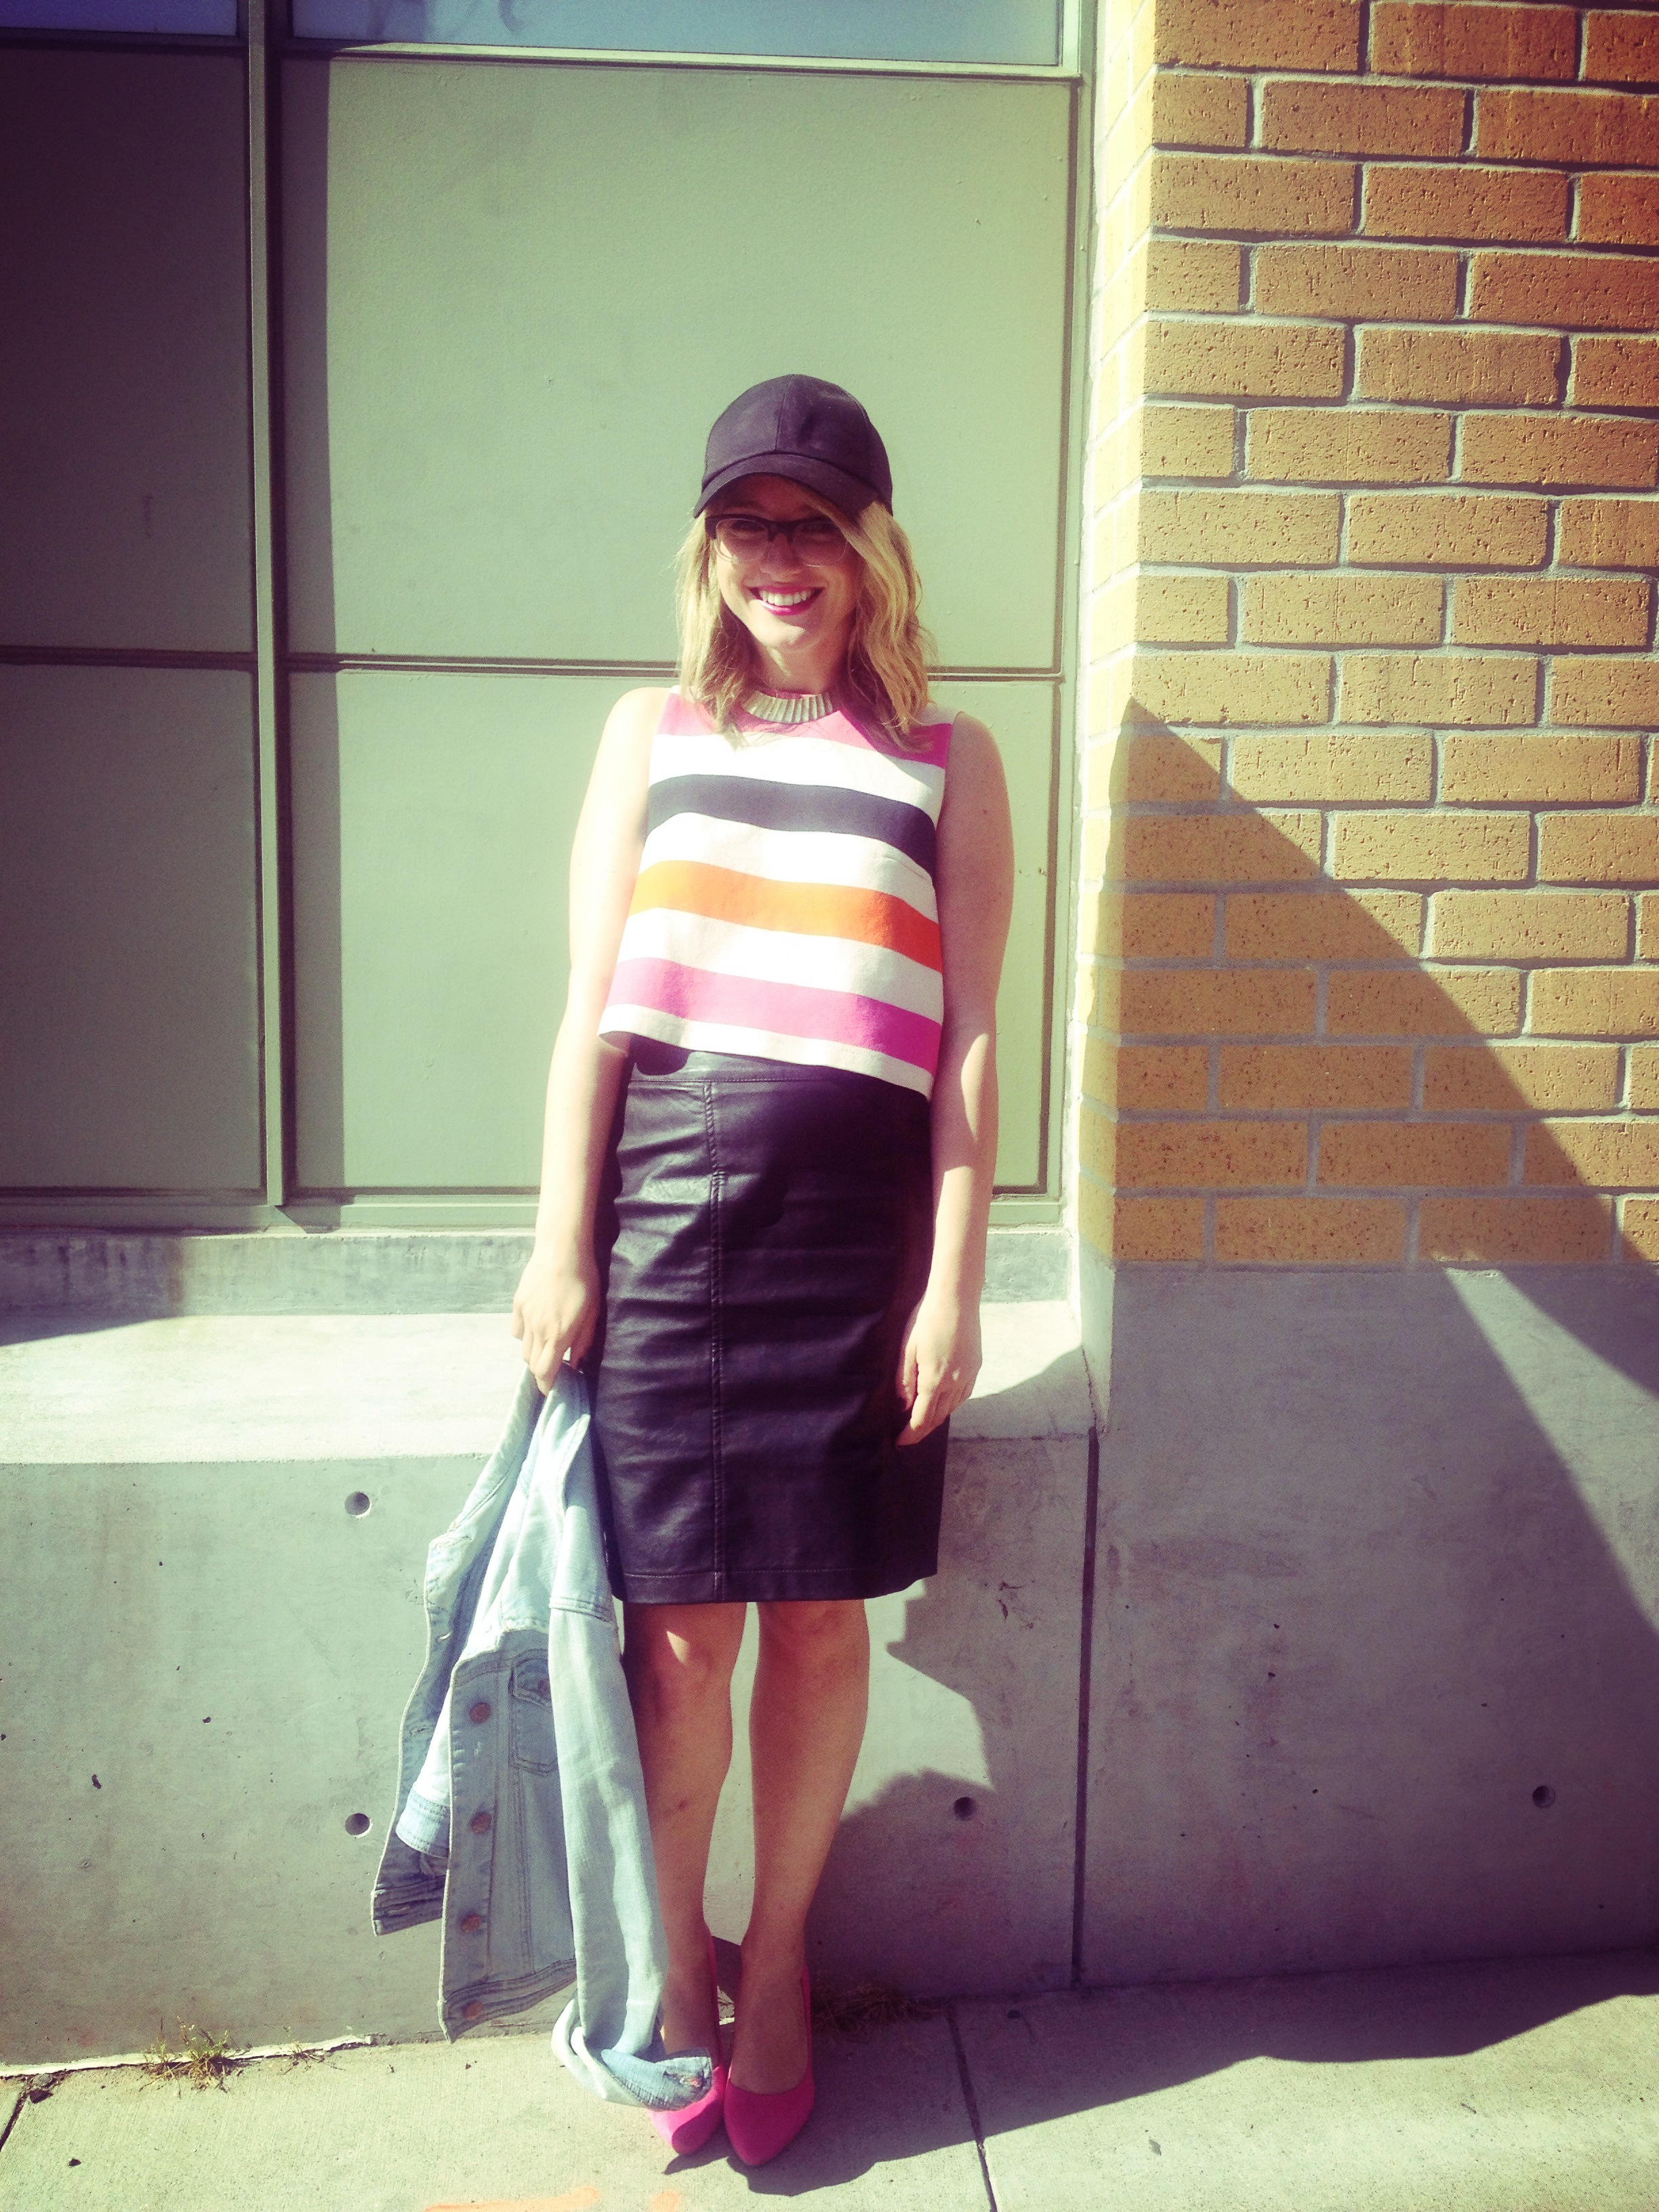 Hat: H&M | Top: H&M | Skirt: F21 | Shoes: H&M